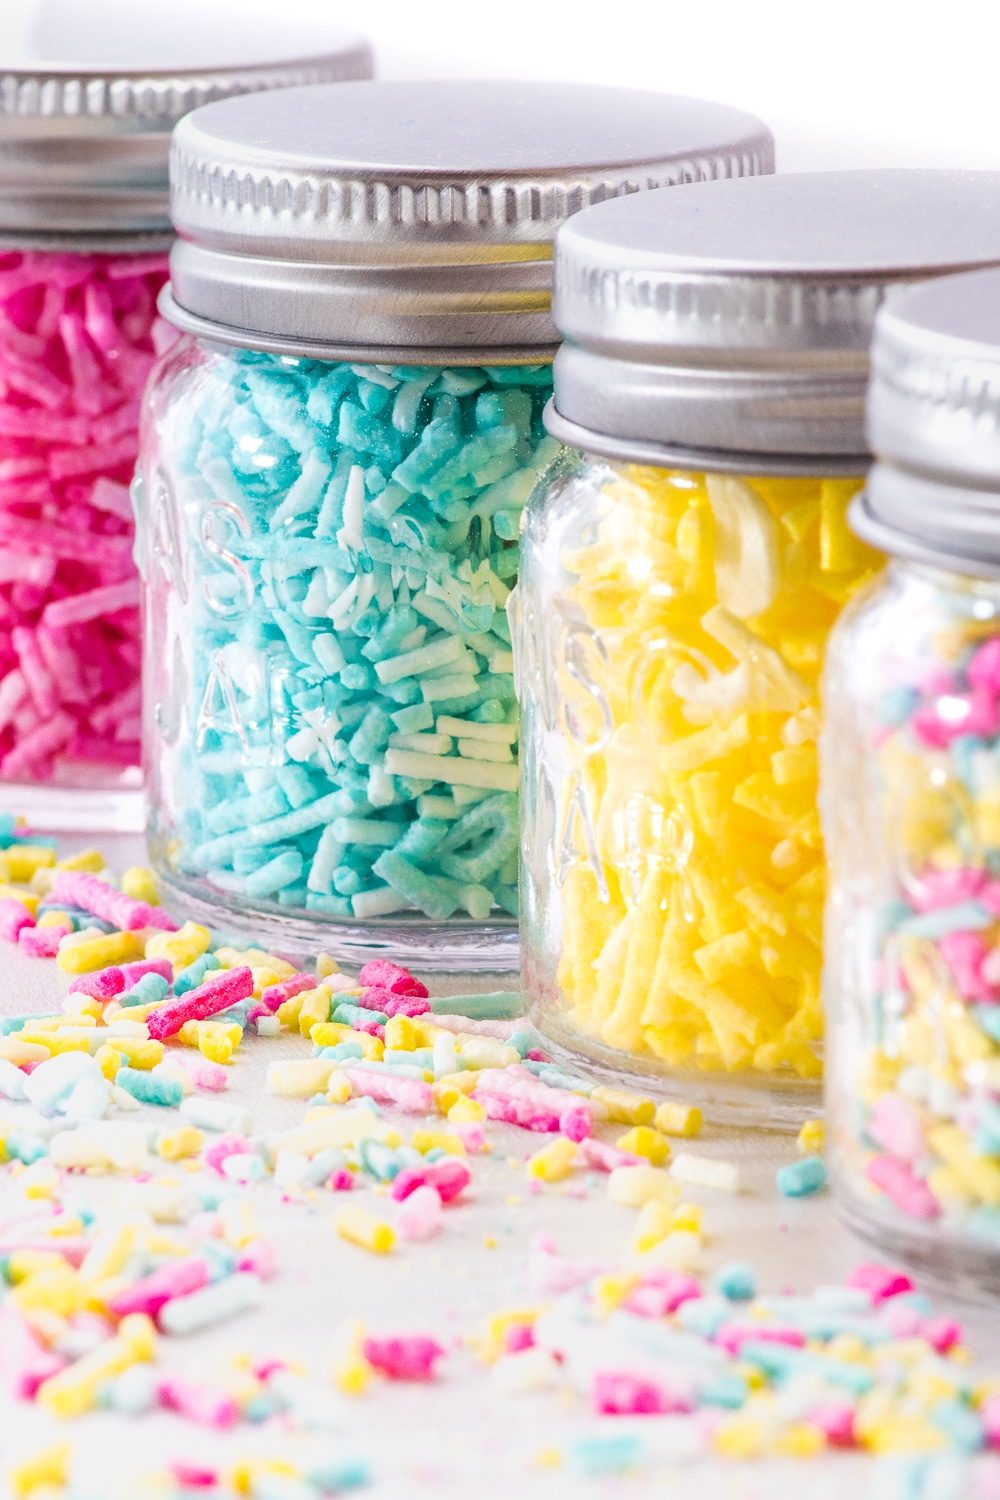 Small glass jars filled with colorful sprinkles.  Sprinkles are also coating the bright white tabletop.